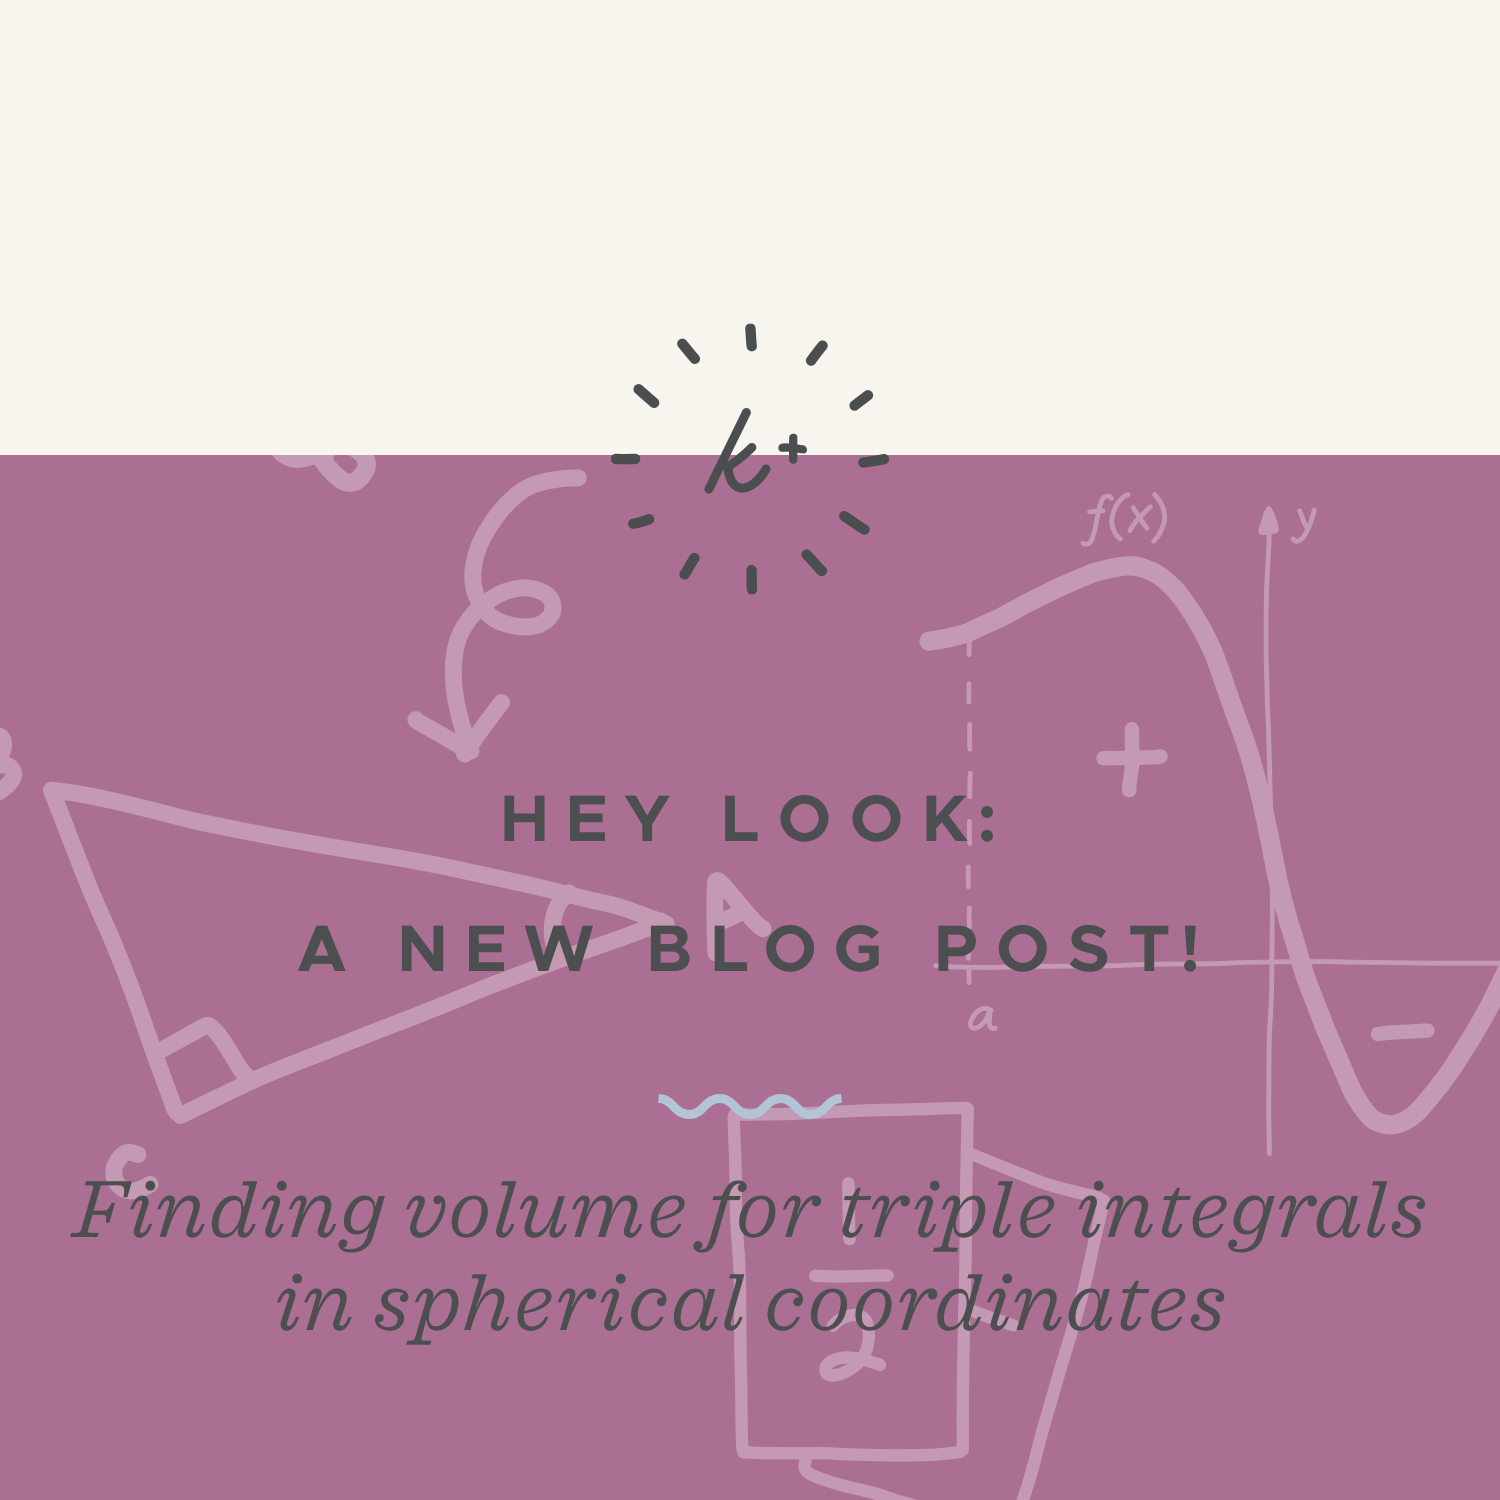 Finding volume for triple integrals in spherical coordinates blog post.jpeg